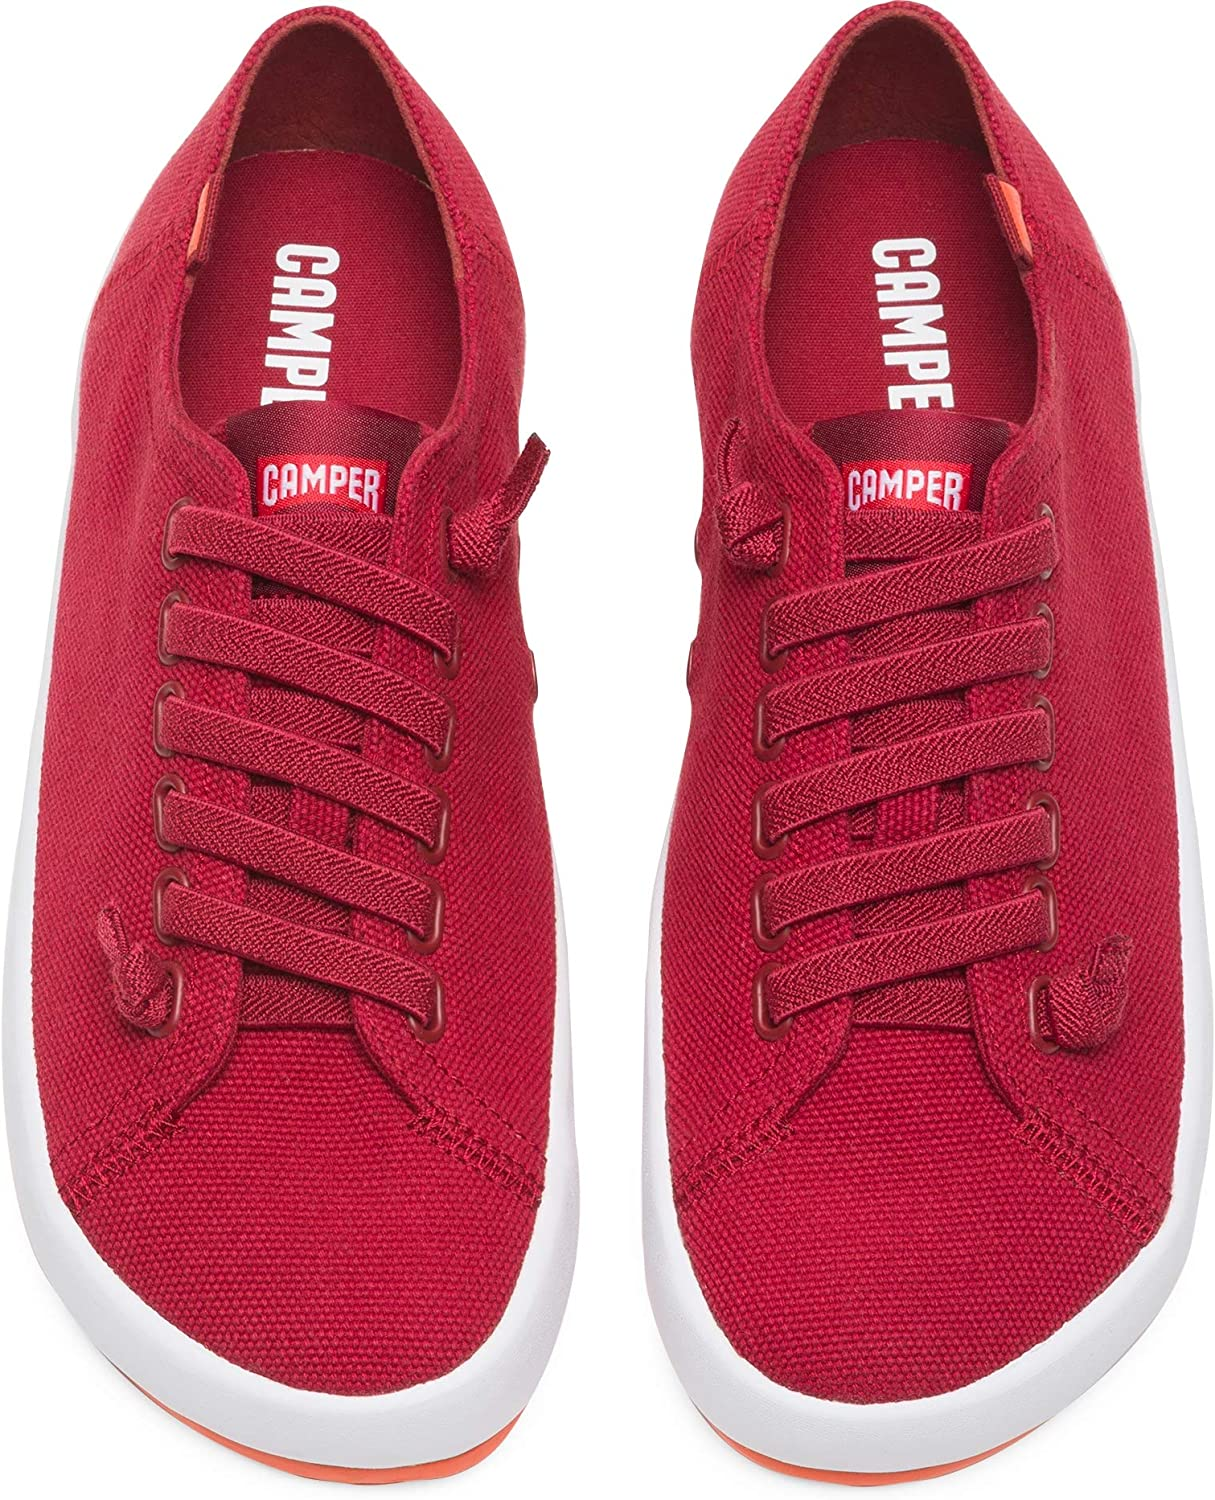 Camper Chaussures Femme Baskets 21897-047 Red Red